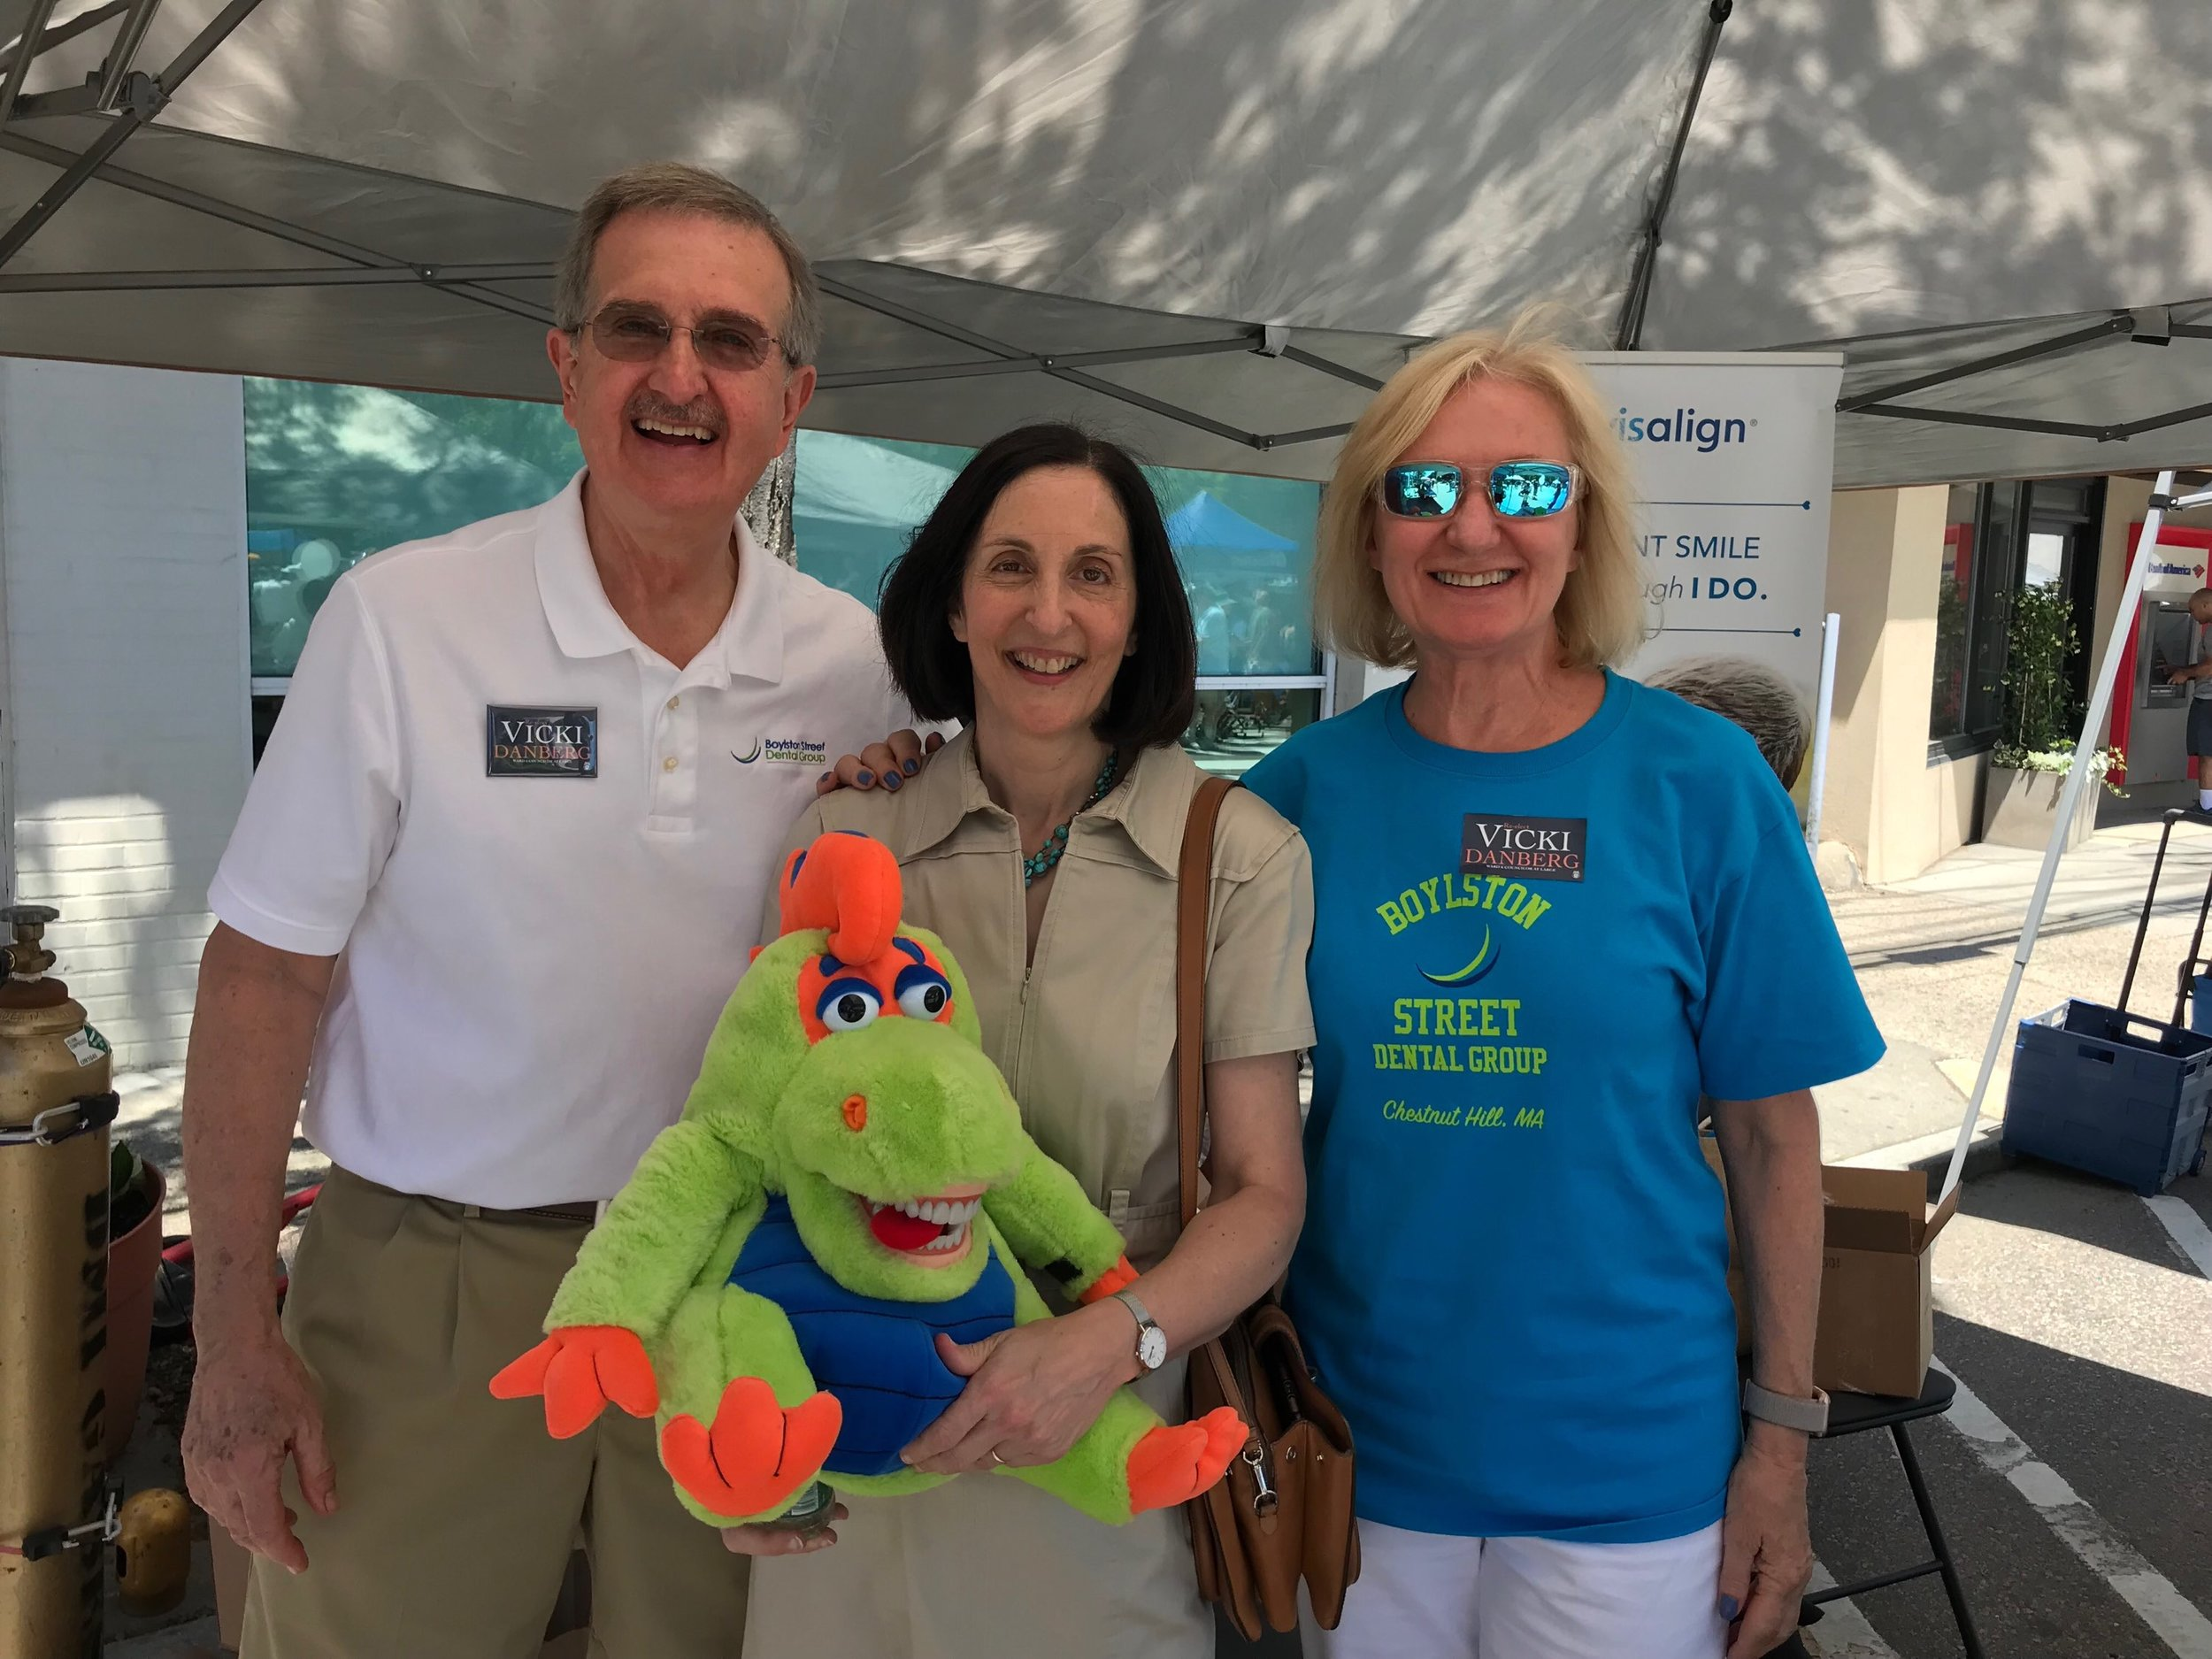 Newton Highlands Village Day with our great Mayor, Ruthanne Fuller.